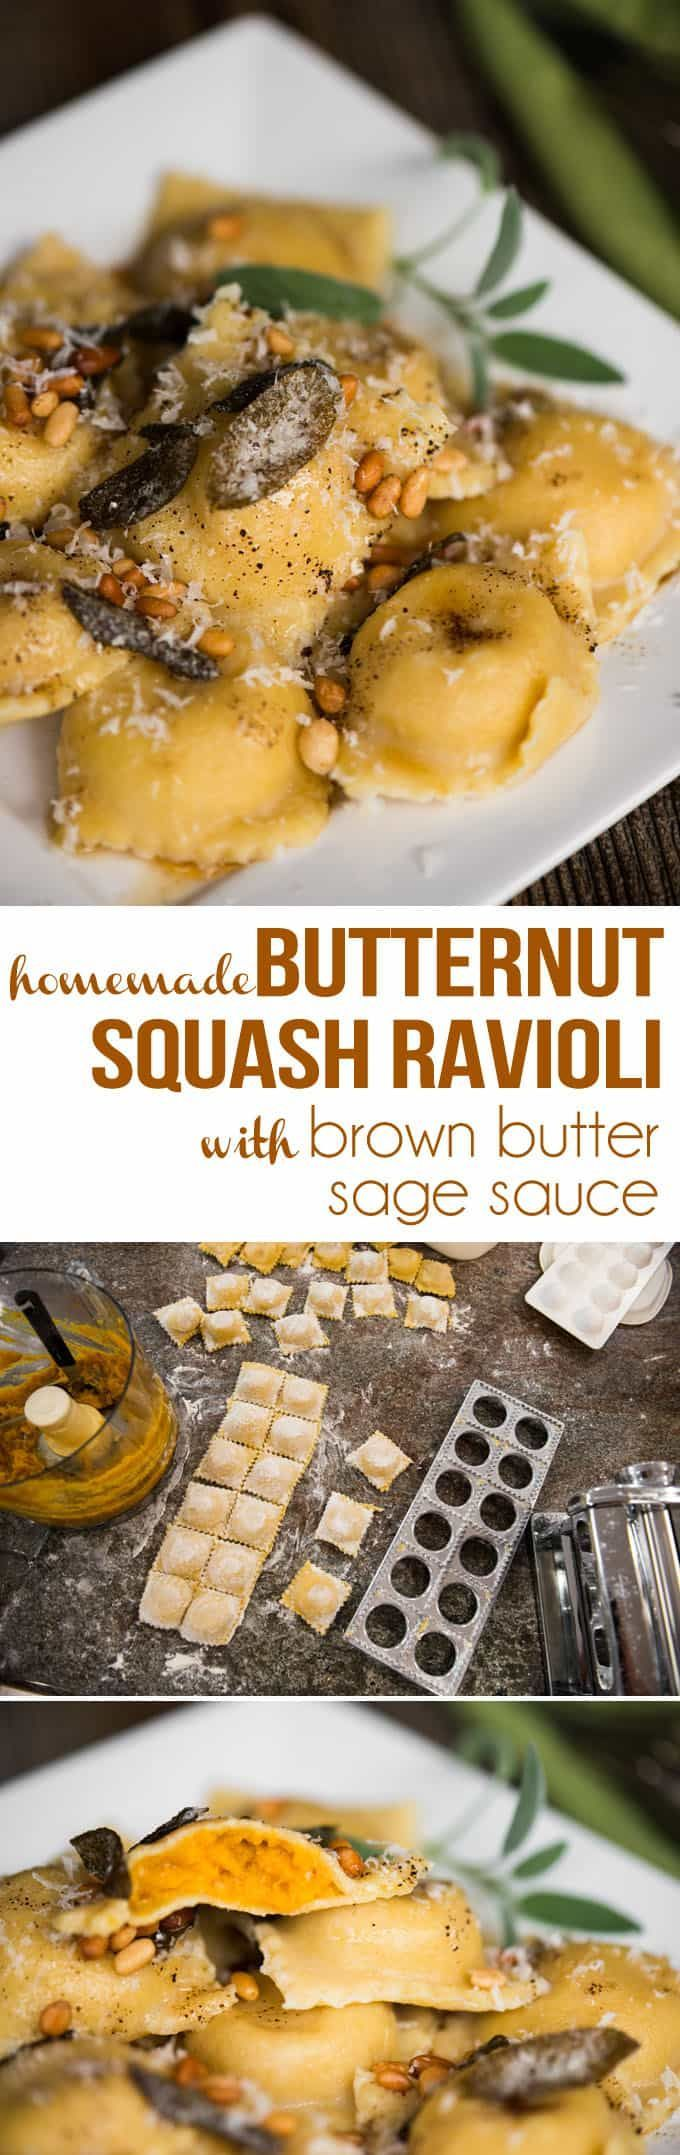 Homemade Butternut Squash Ravioli with Brown Butter Sage Sauce, made with pasta dough from scratch and roasted garlic and butternut, tastes like heaven. #butternutsquashravioli #homemaderavioli